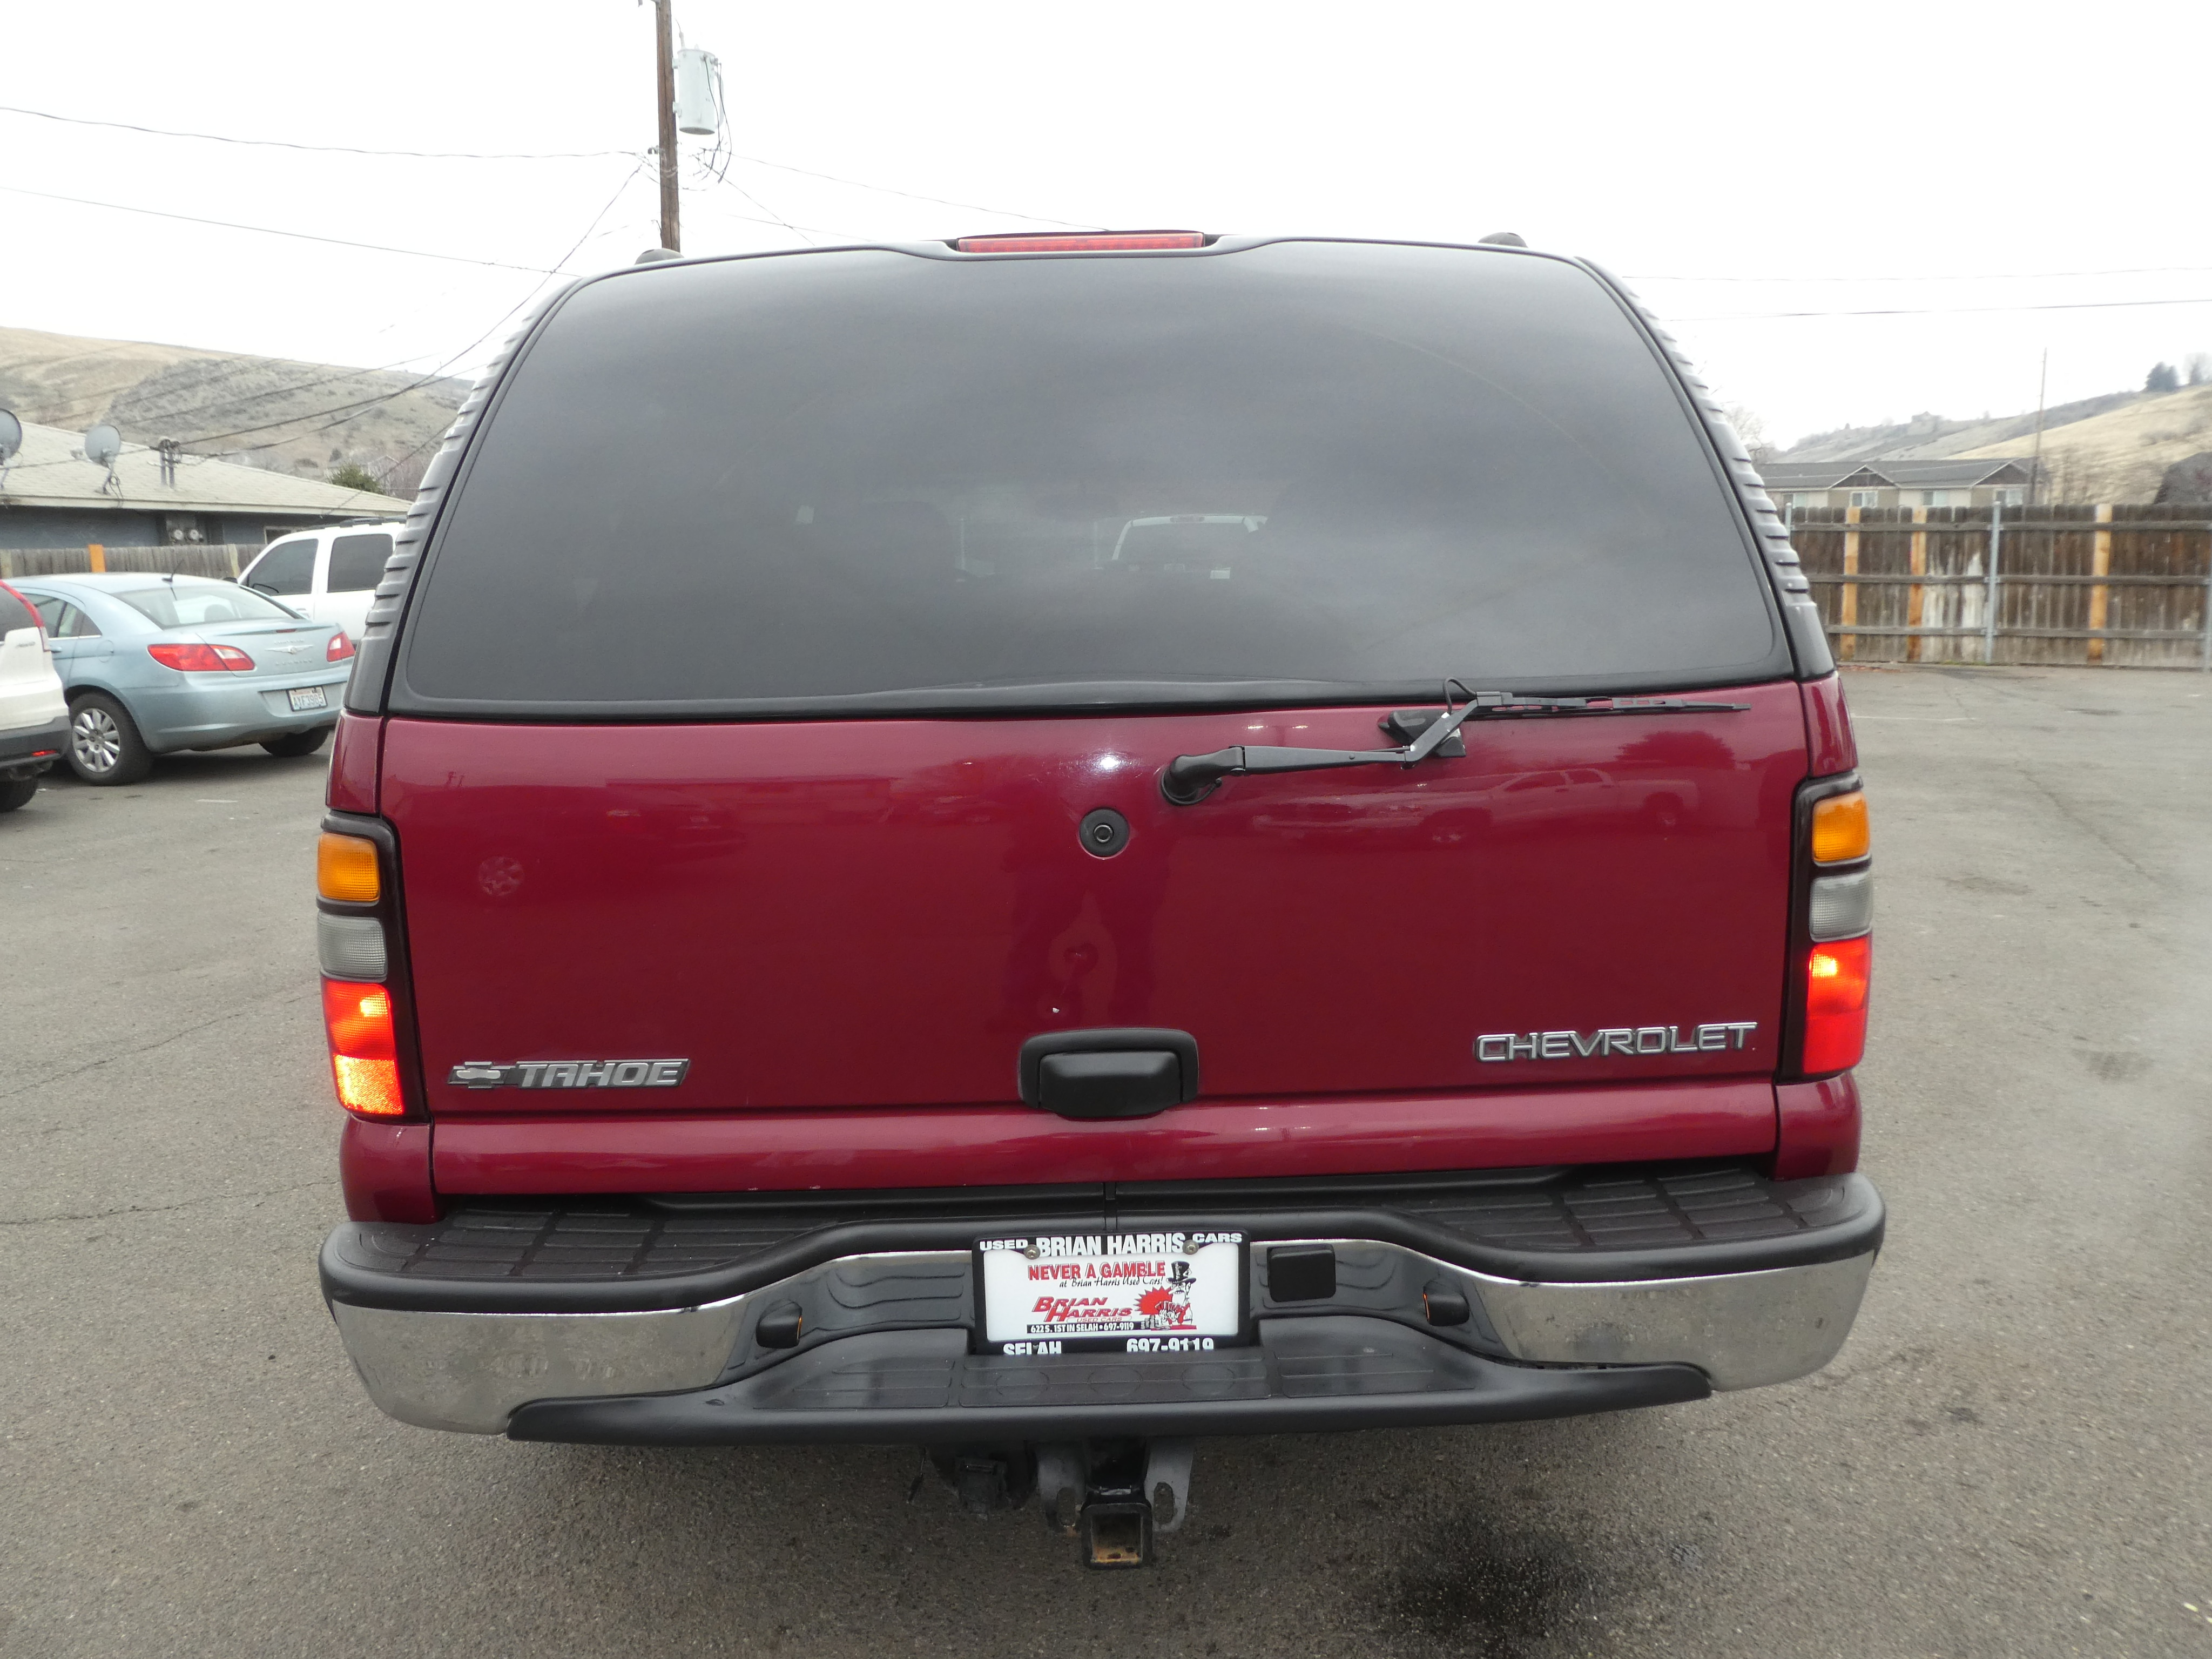 Used 2005 Chevrolet Tahoe For Sale at Brian Harris Used Cars